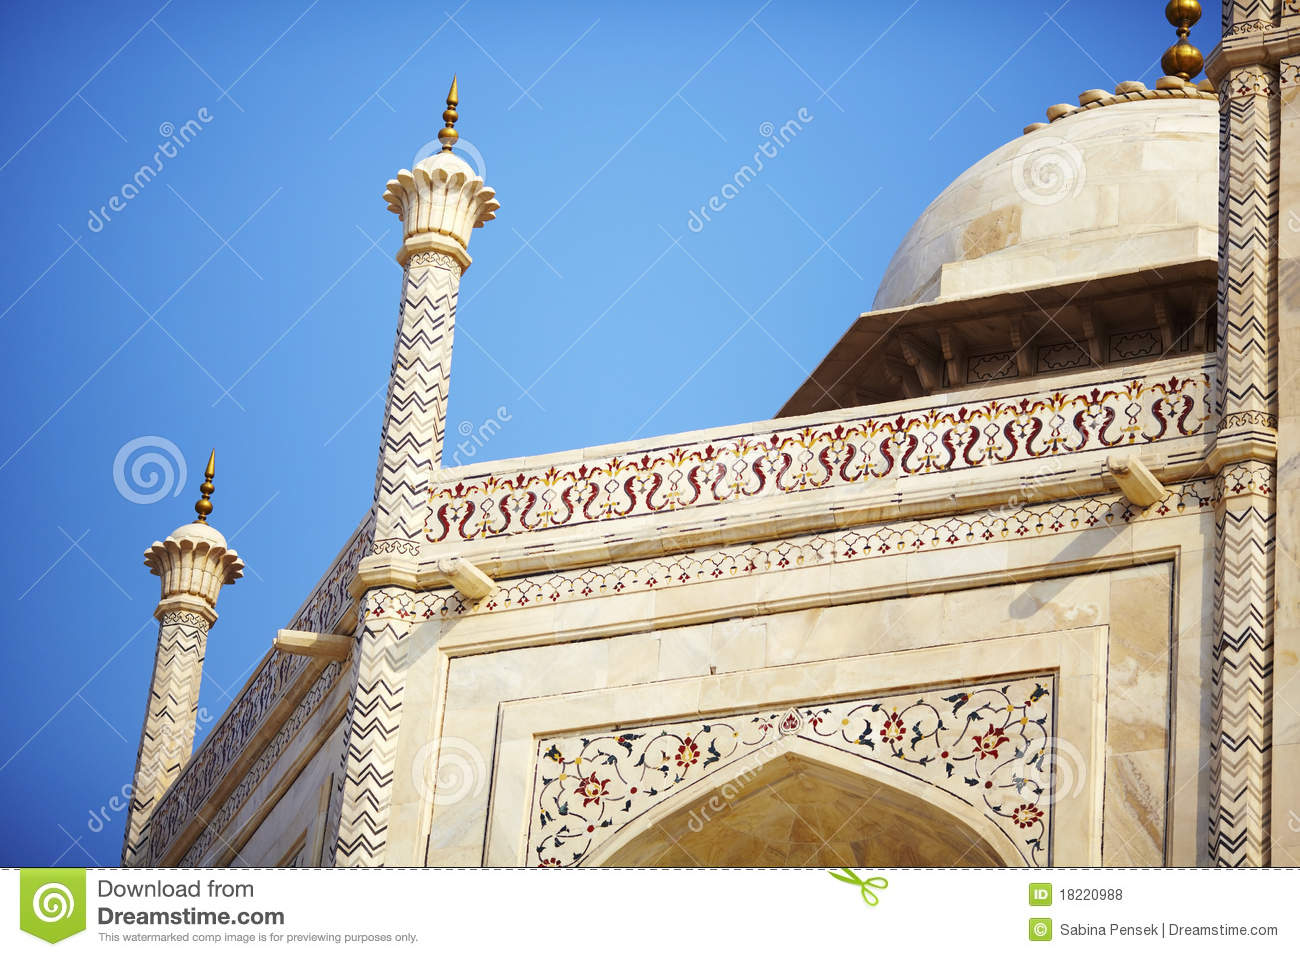 Mosque Detail Of The Dome And Pillars Royalty Free Stock